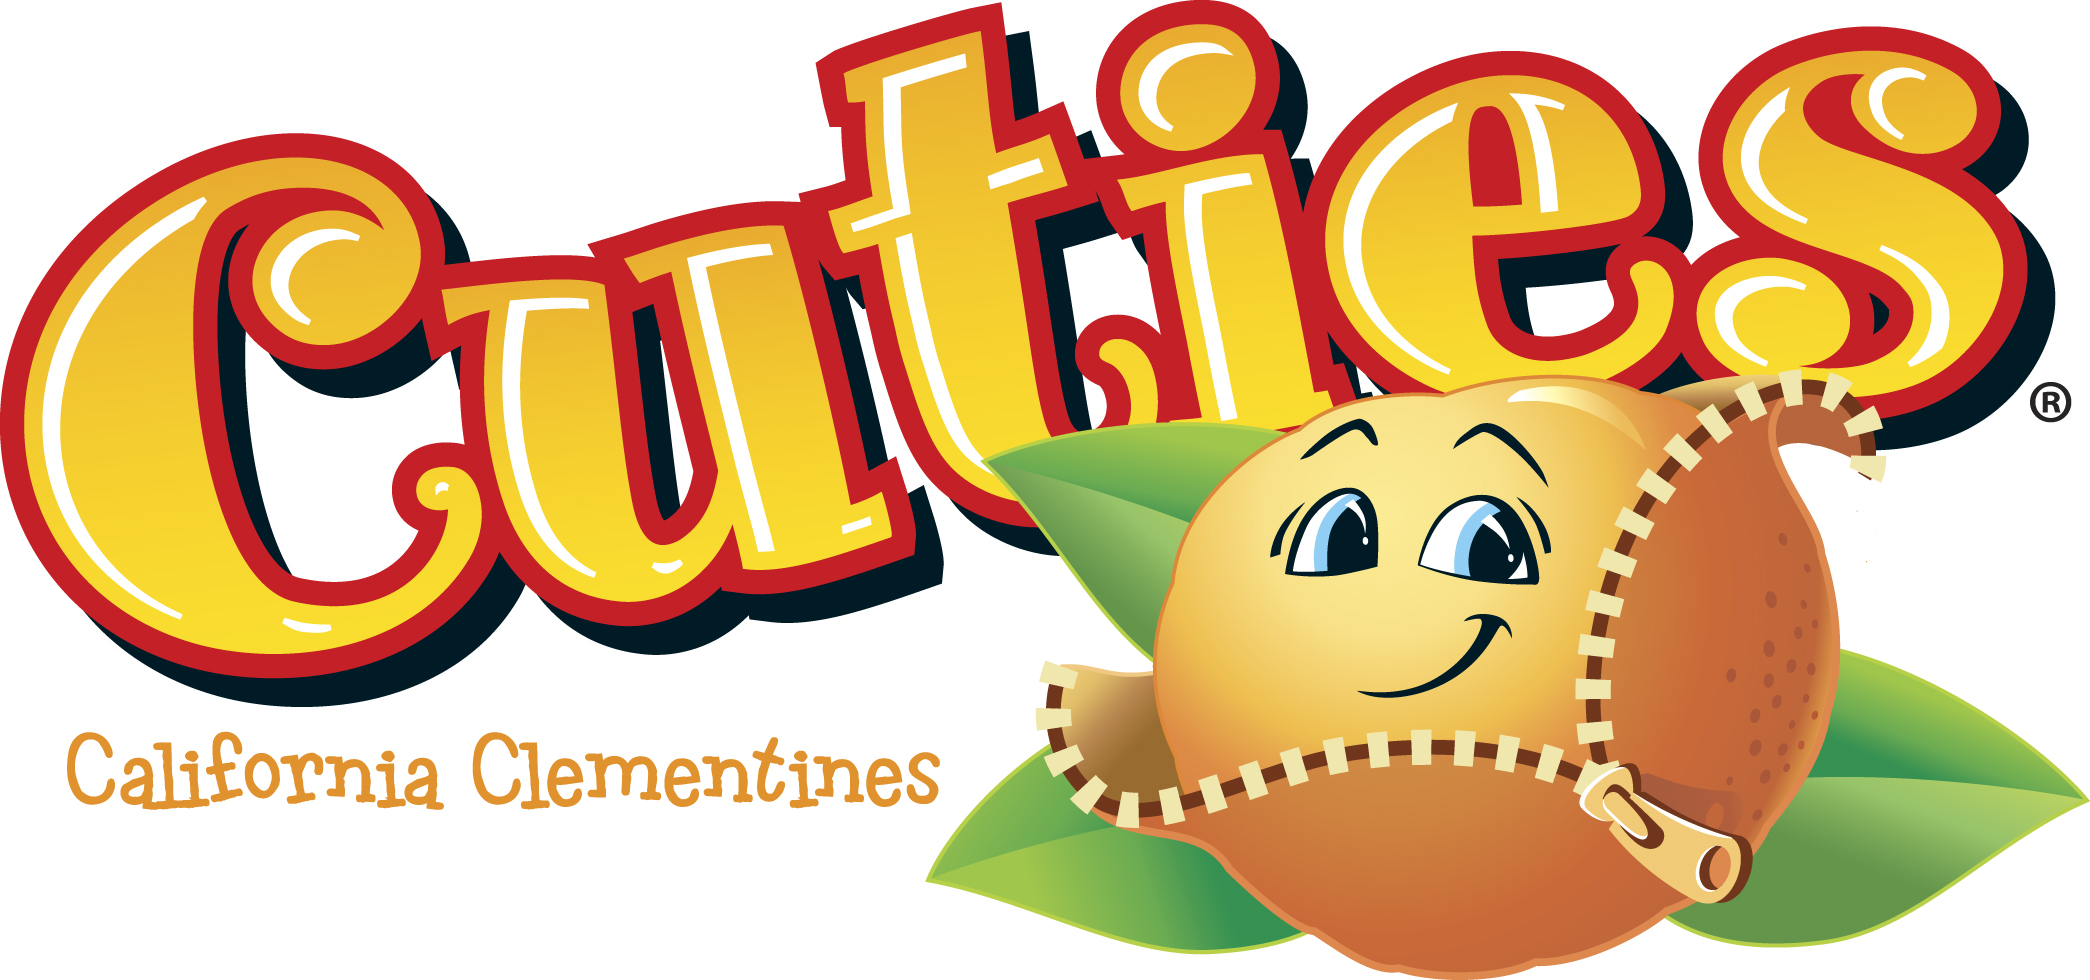 Introduction Of Cuties® California Clementines